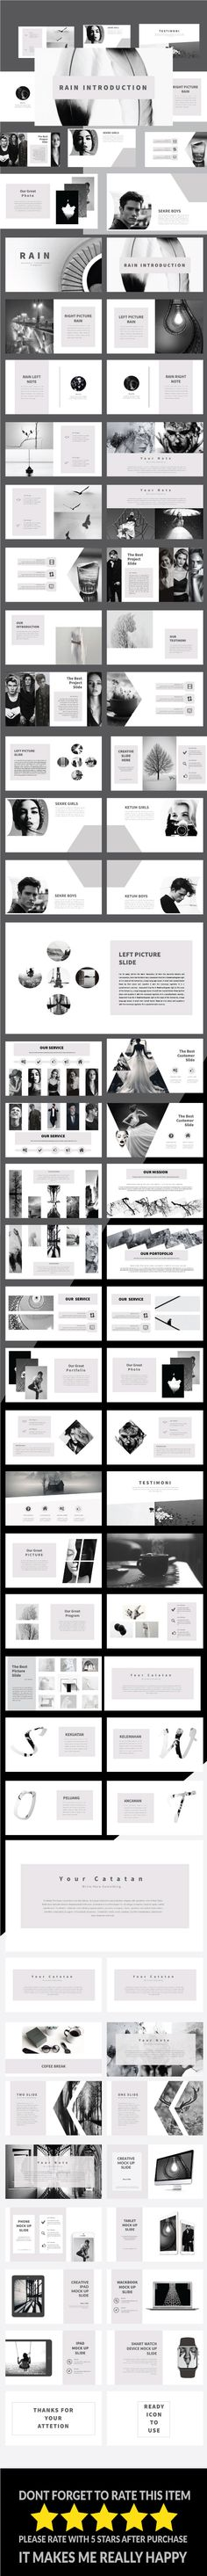 Rain - Multipurpose PowerPoint Template - PowerPoint Templates Presentation Templates